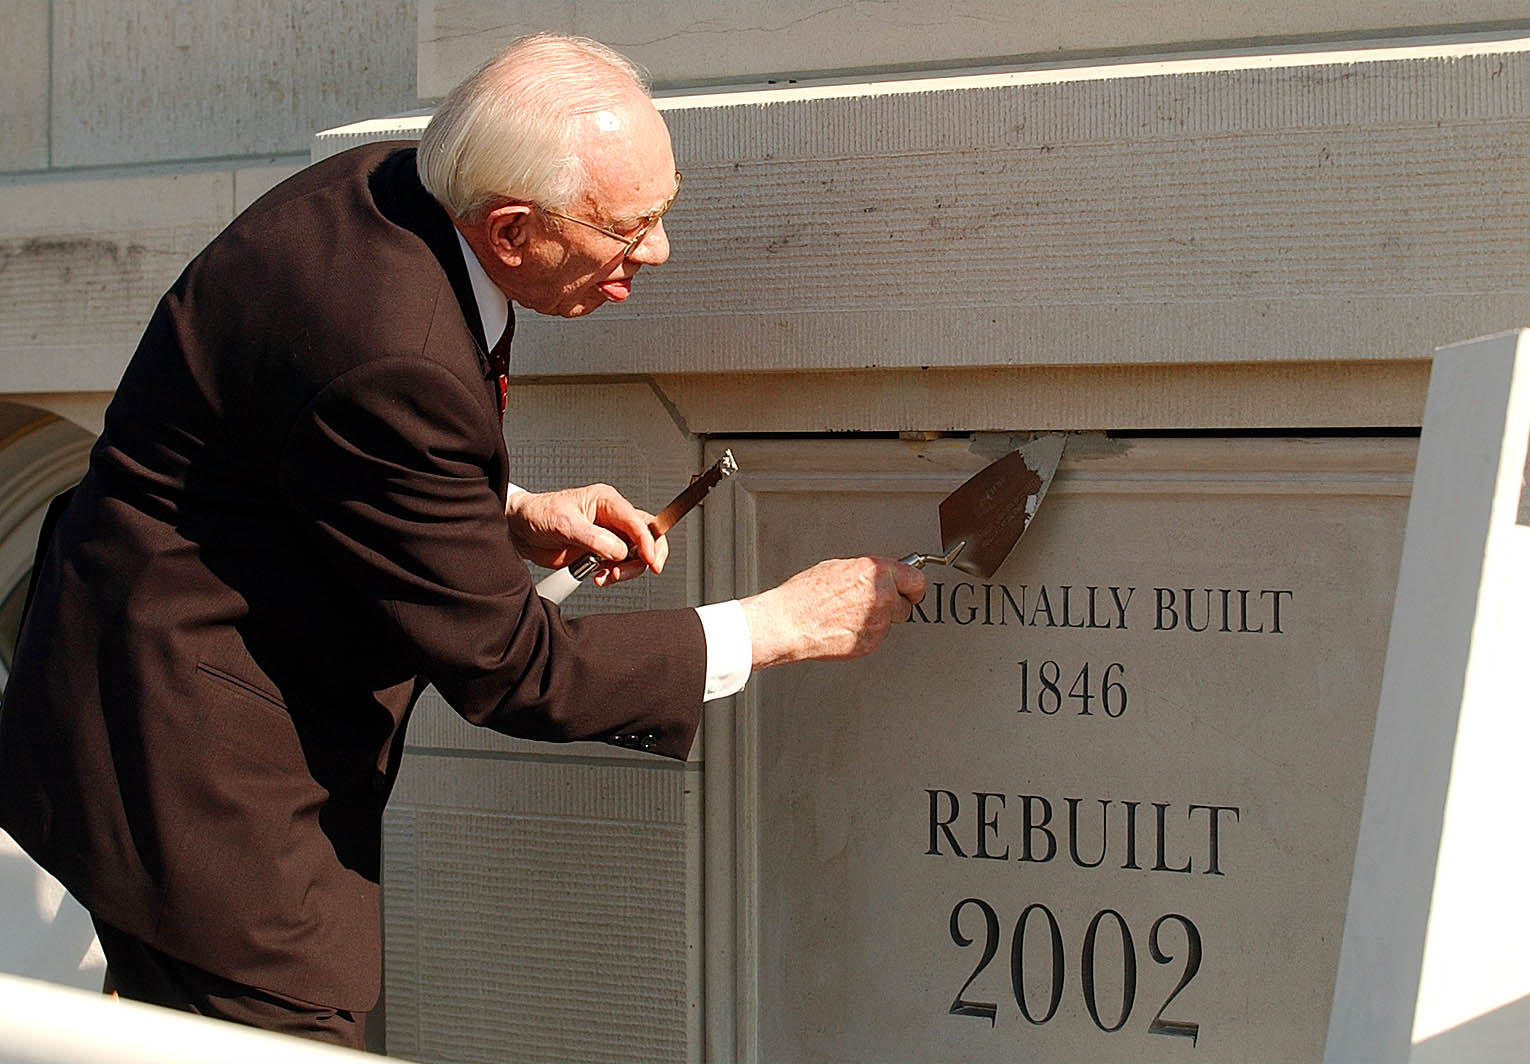 President Gordon B. Hinckley applies mortar to the cornerstone at the Nauvoo Illinois Temple on June 27, 2002.